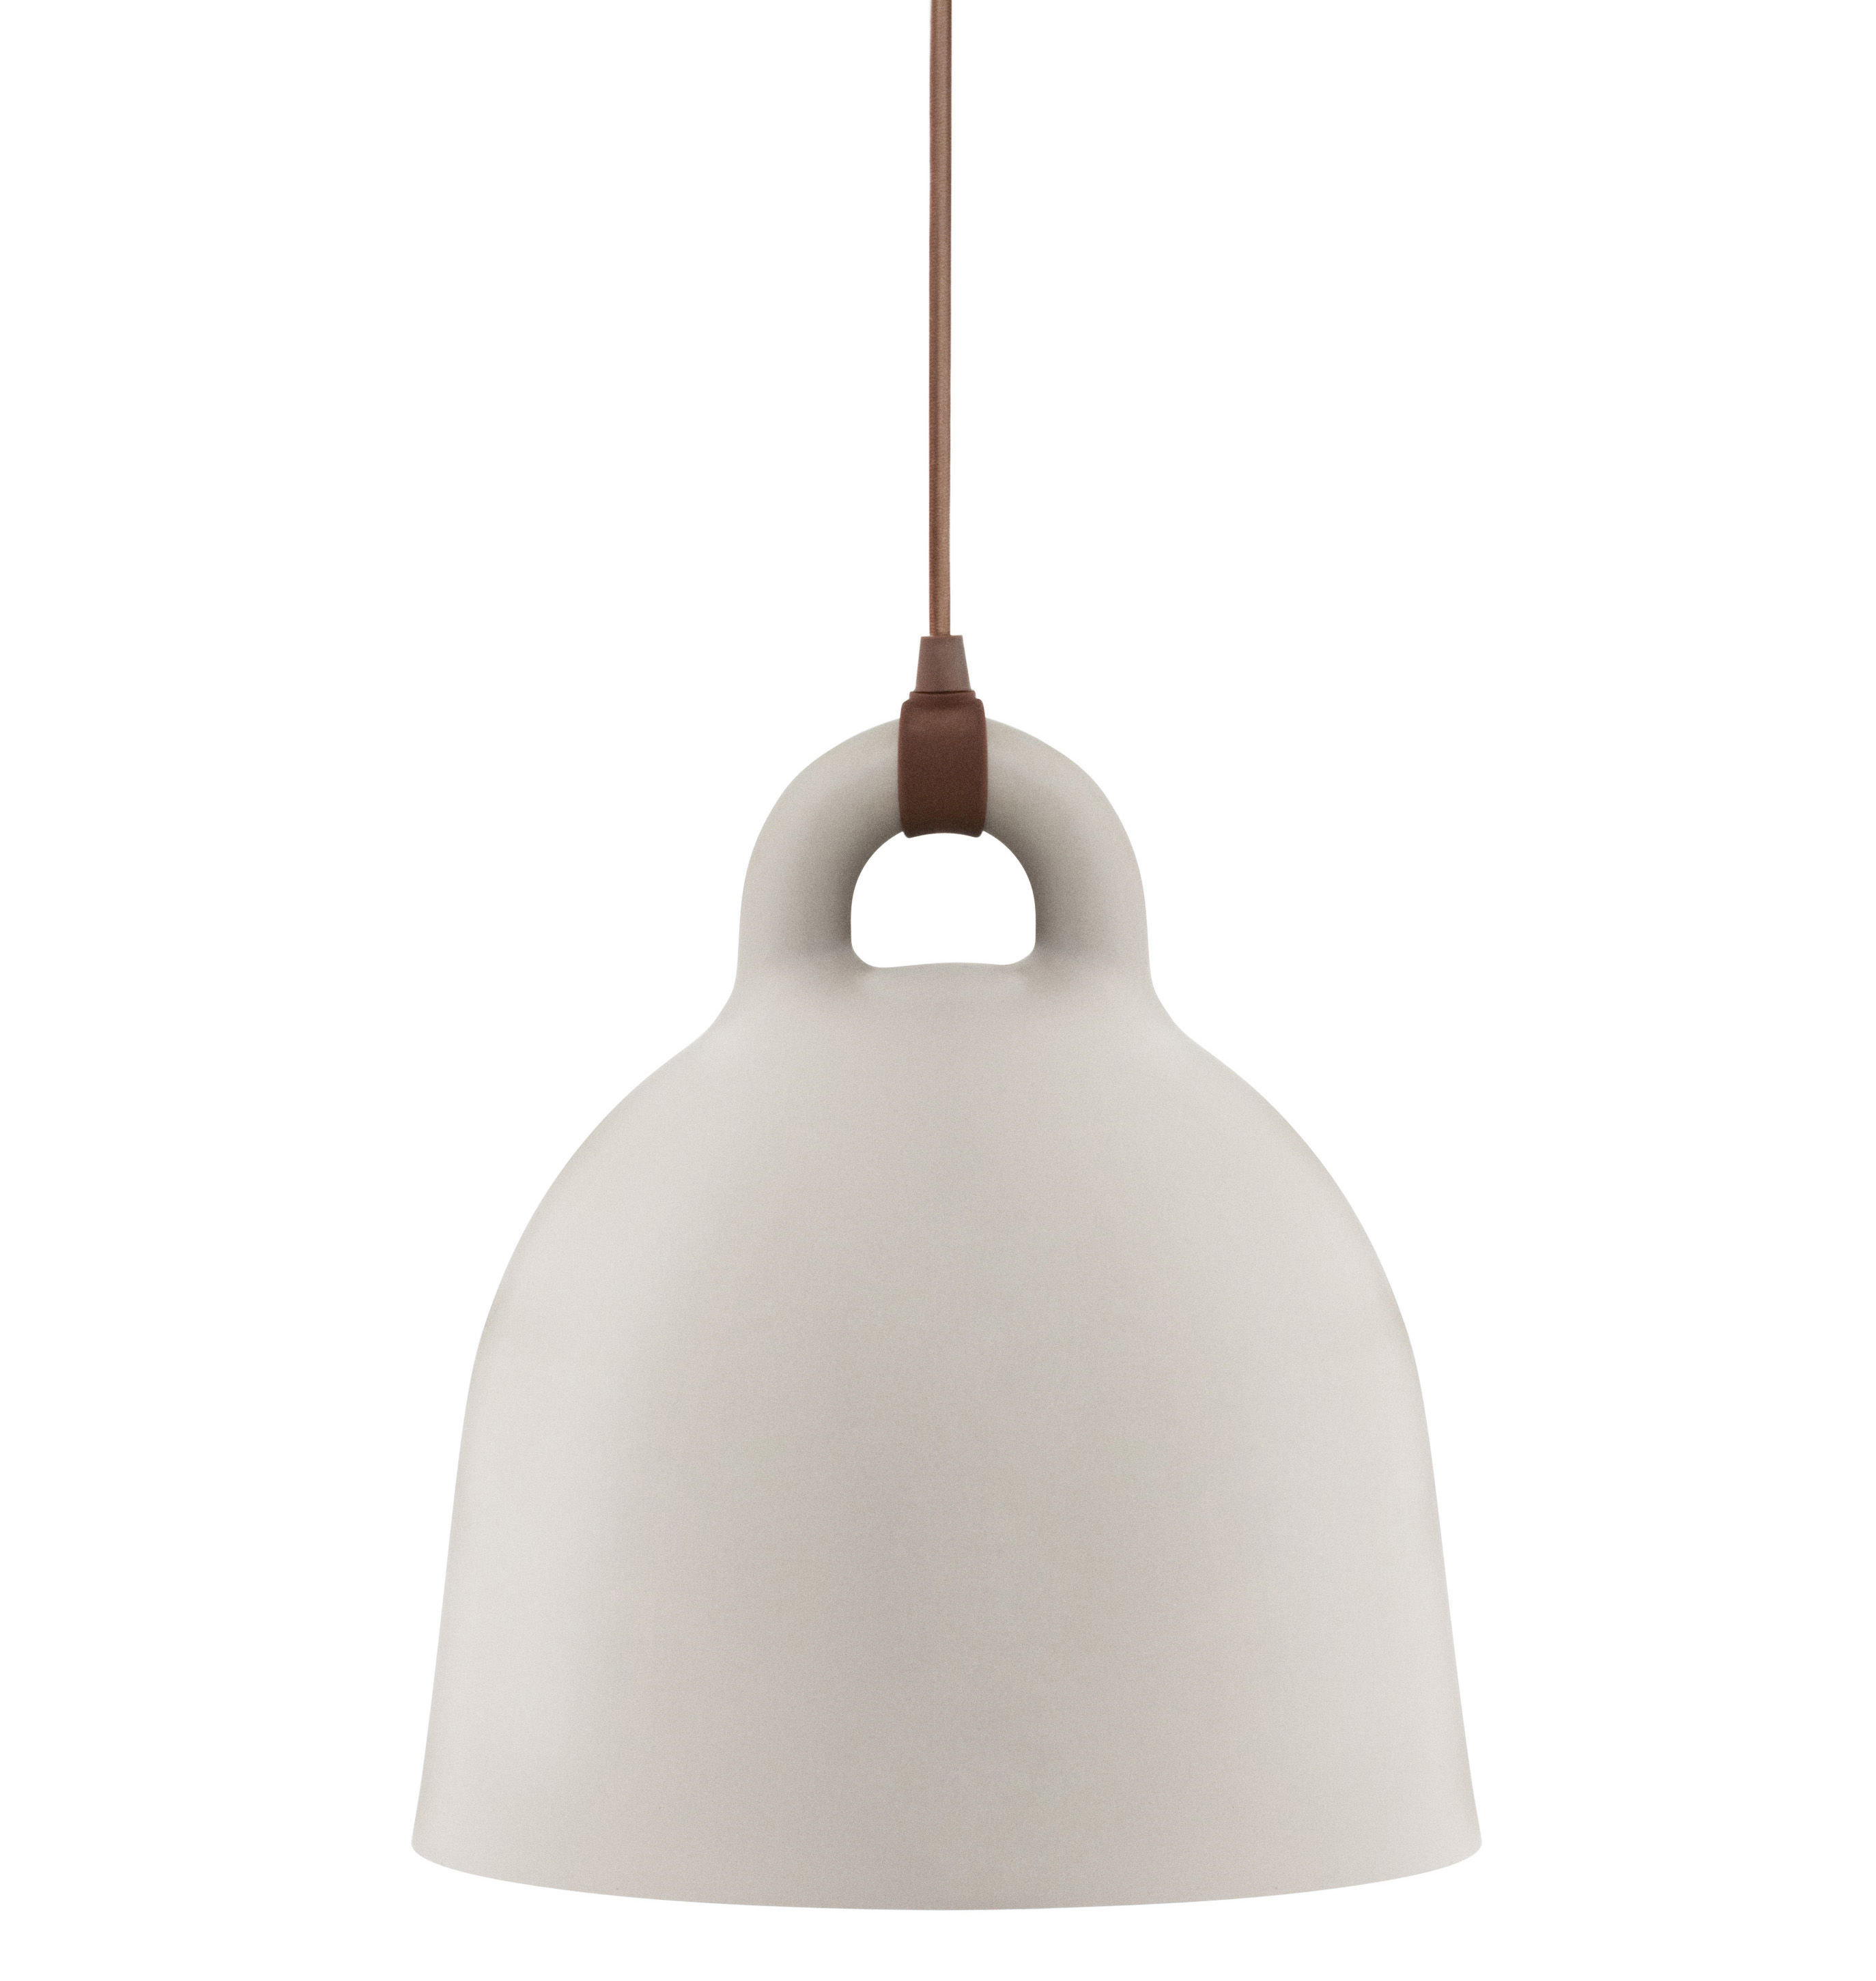 Suspension Bell Small 35 Cm Sable Mat Amp Int Blanc